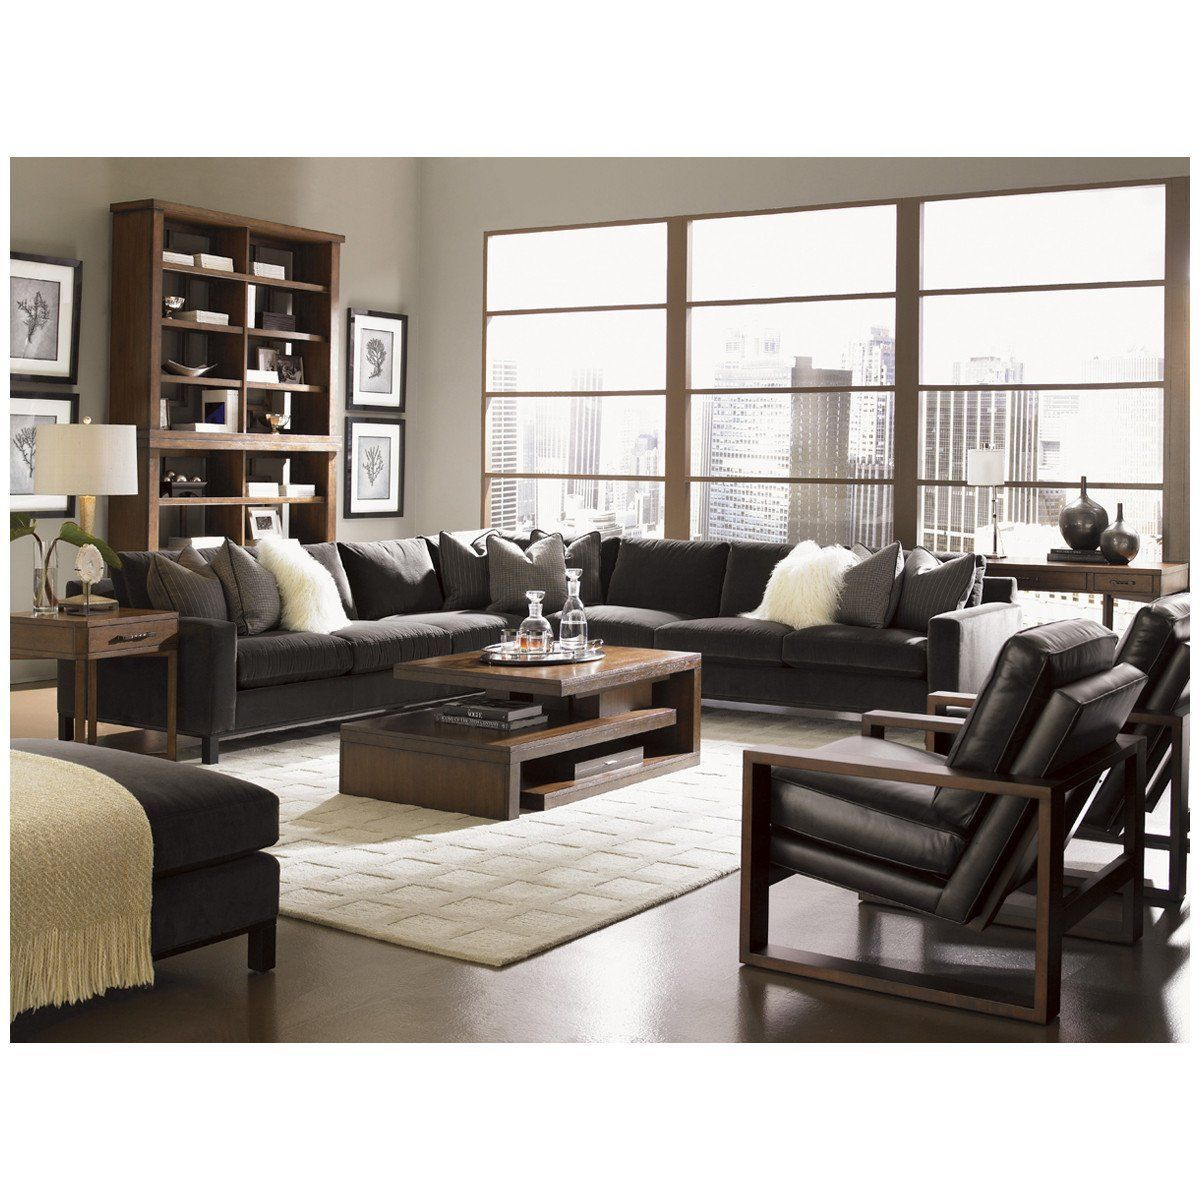 Lexington 11 South Chronicle Sectional Luxury Furniture Upscale